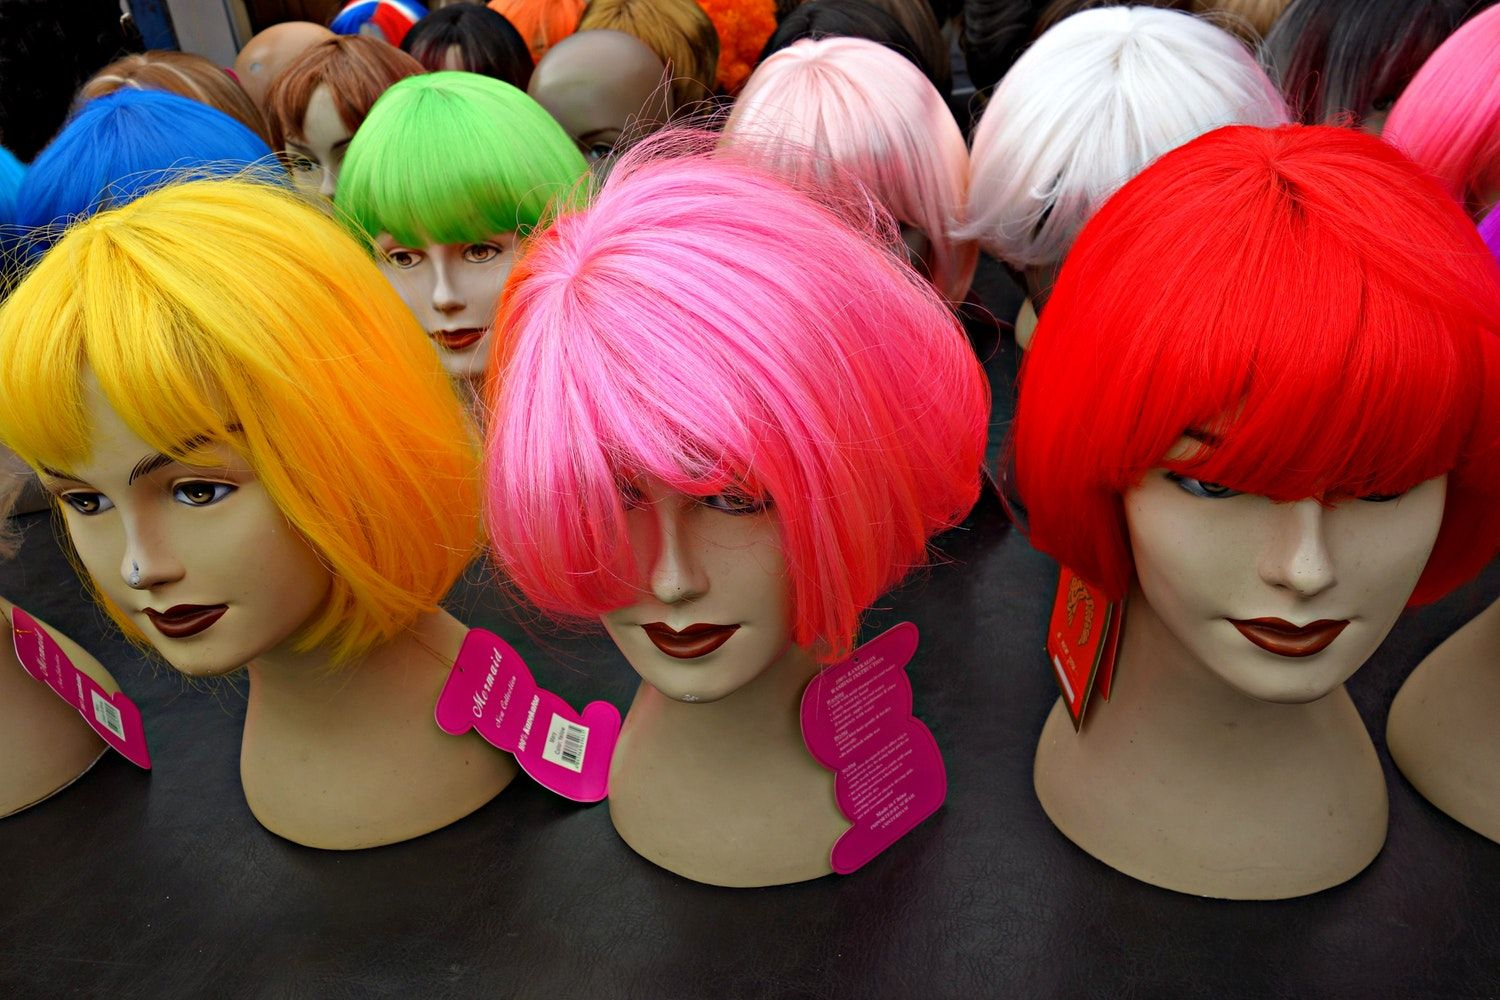 We will tell you where to buy wig accessories, how to care for wigs and hairpieces, All about this product important thing you should know before buying.